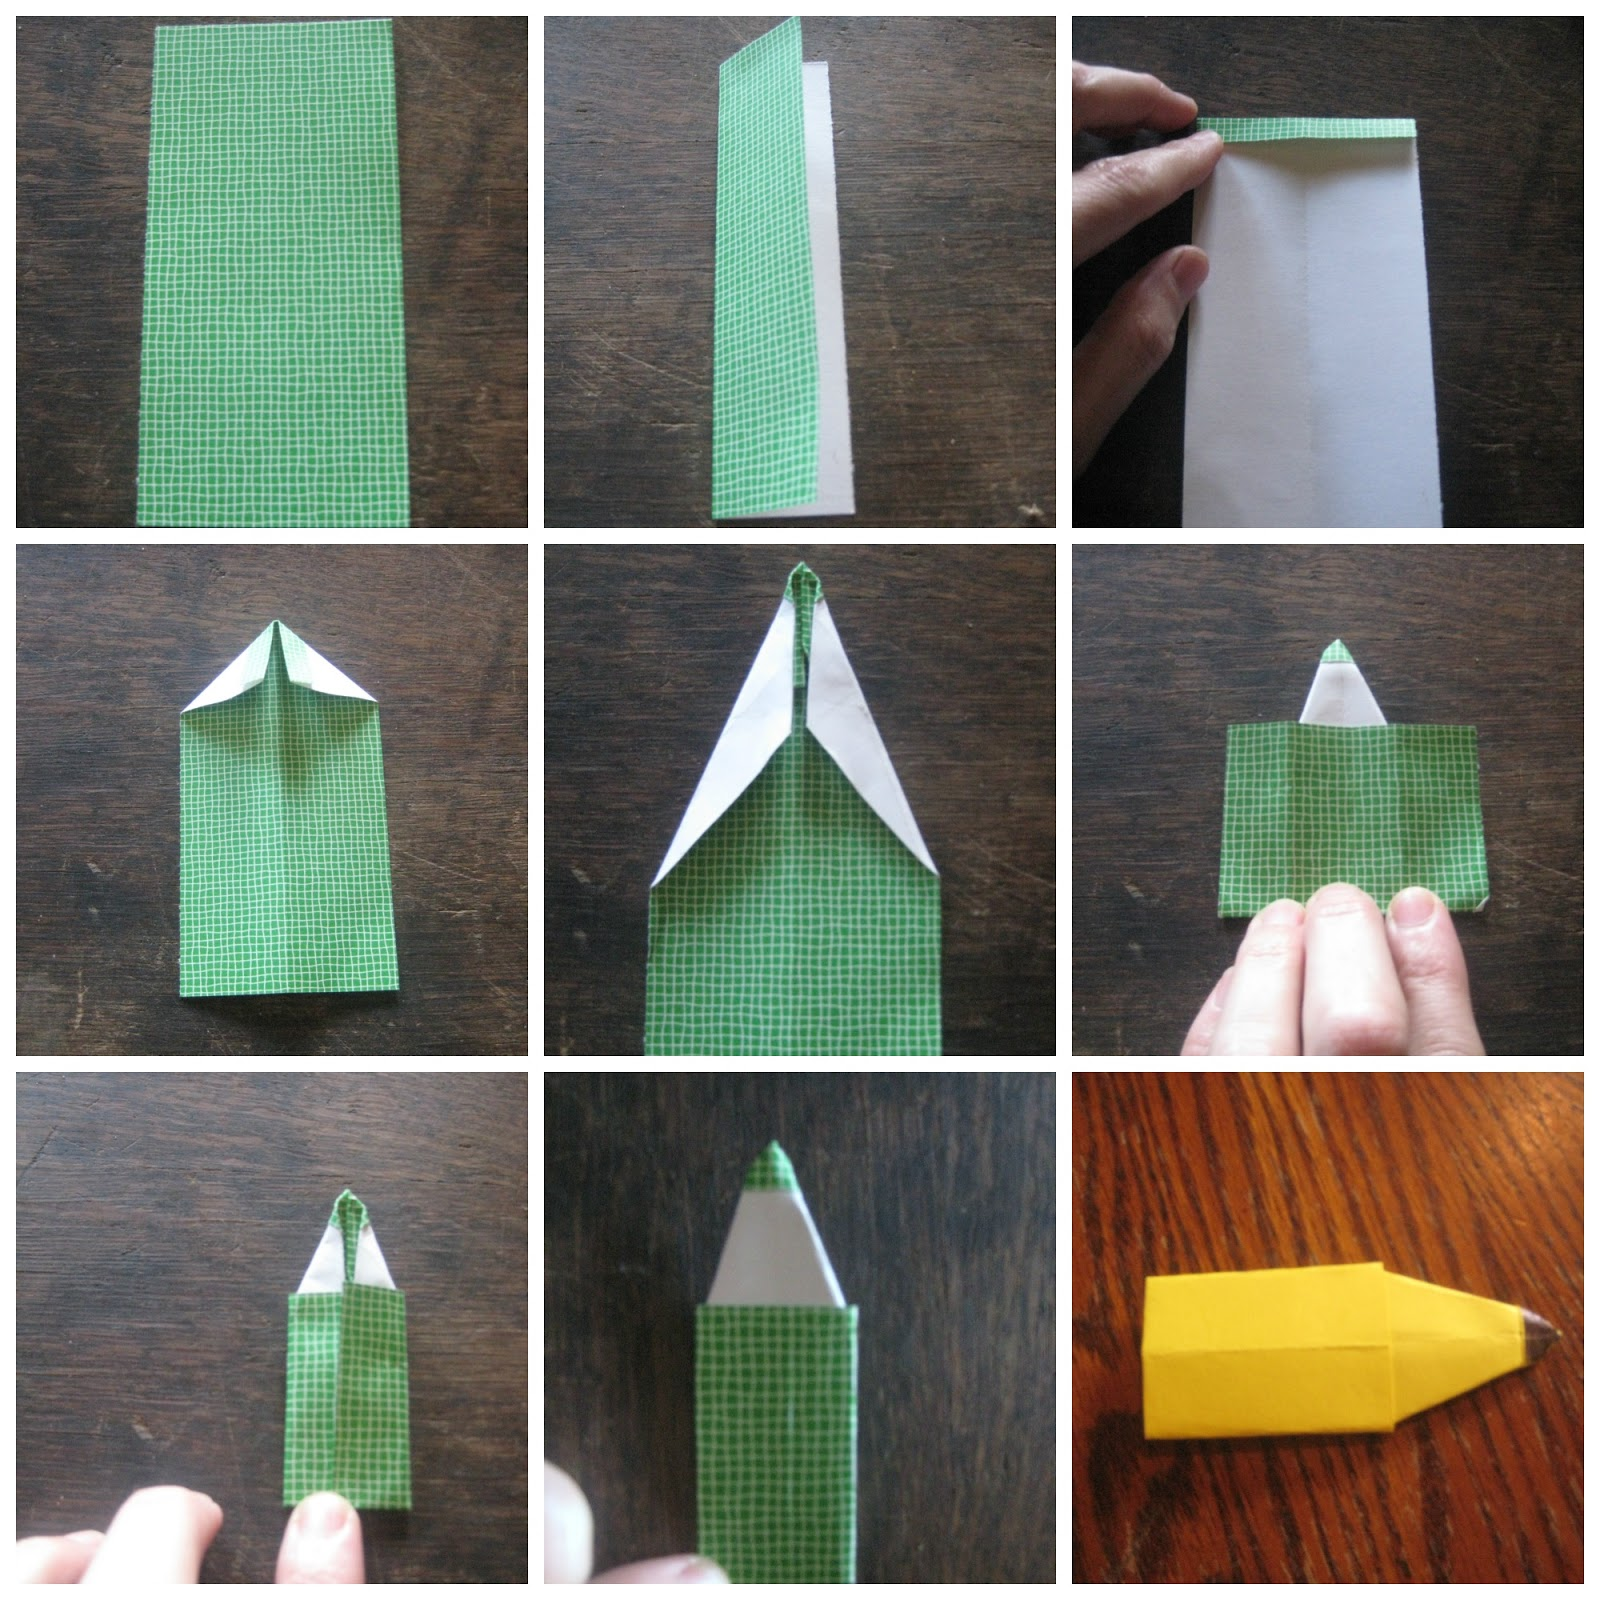 How To Make A Paper Bookmark : Chickenpete paper pencil bookmarks